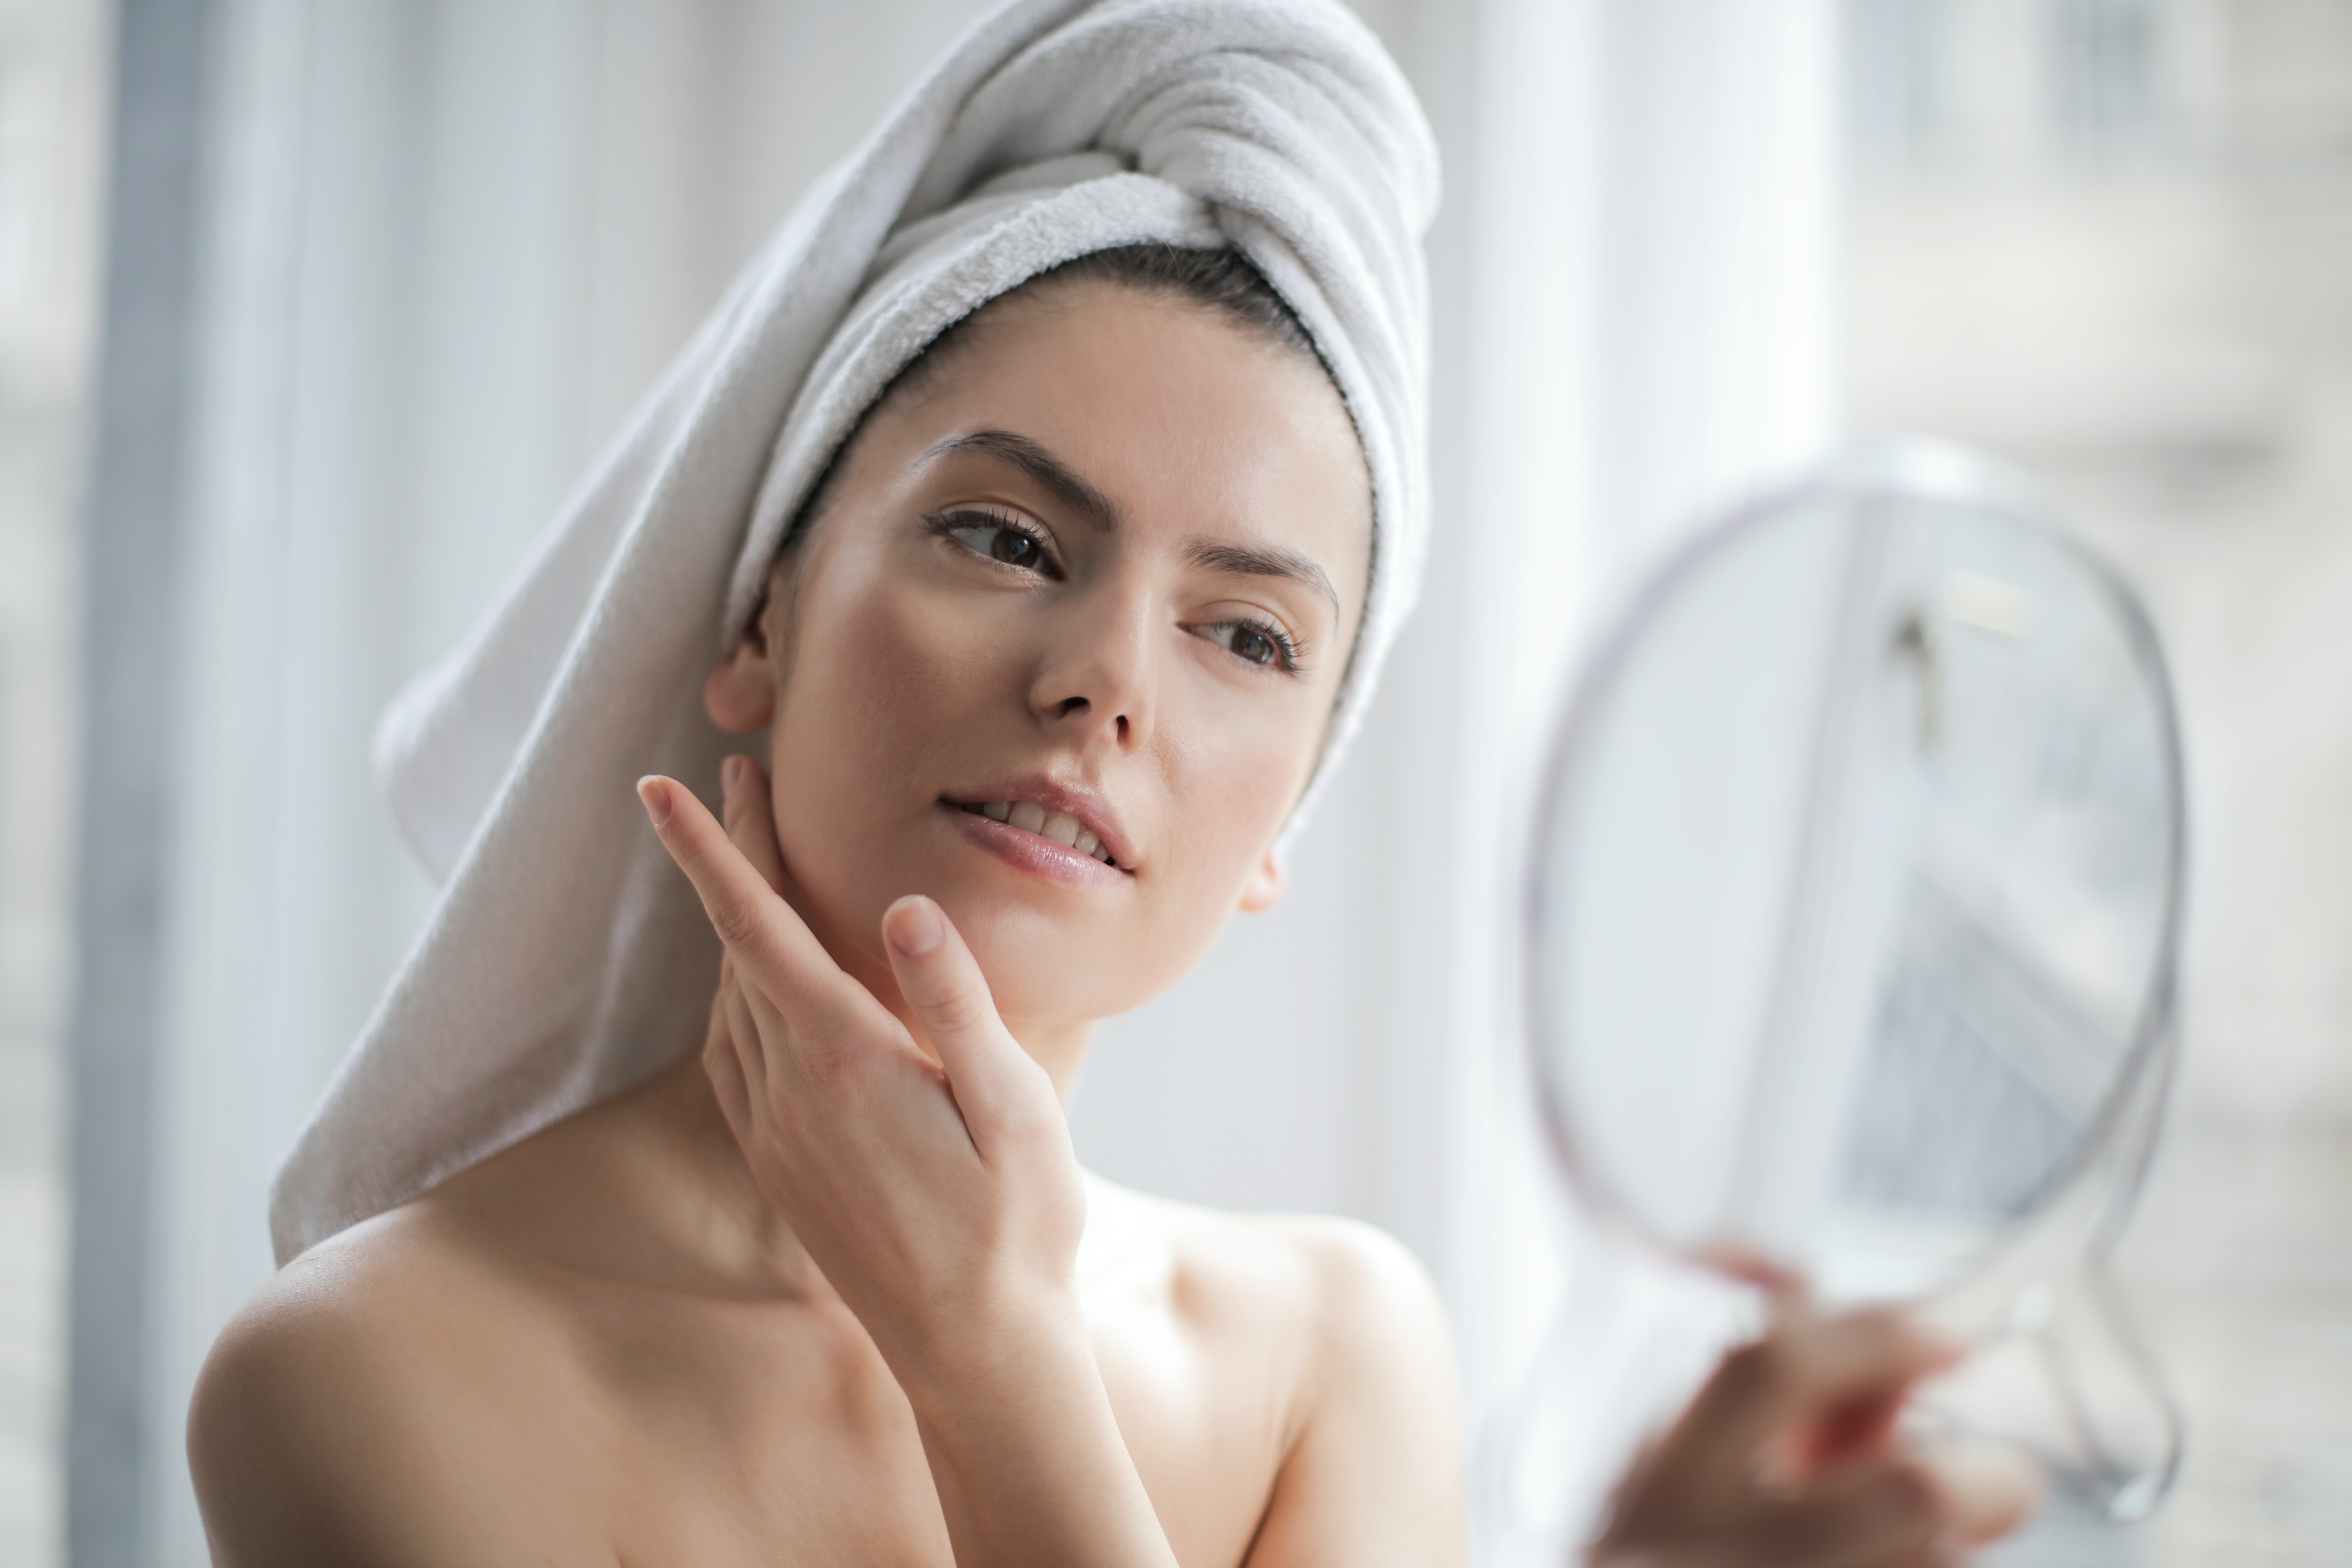 10 Easy Ways To Take Care Of Your Face Naturally